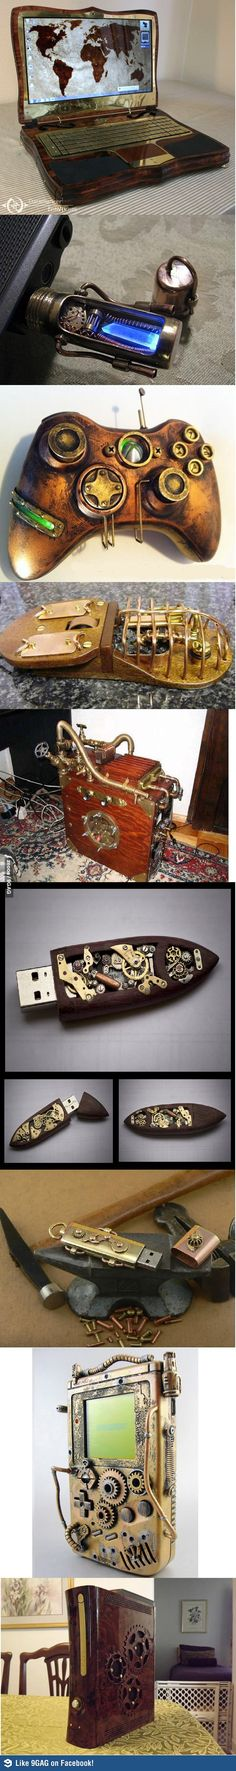 Funny pictures about Steampunk gadgets. Oh, and cool pics about Steampunk gadgets. Also, Steampunk gadgets. Arte Steampunk, Style Steampunk, Steampunk Design, Steampunk Costume, Steampunk Fashion, Steampunk Clothing, Steam Punk Diy, Gadgets Steampunk, Steampunk Accessoires